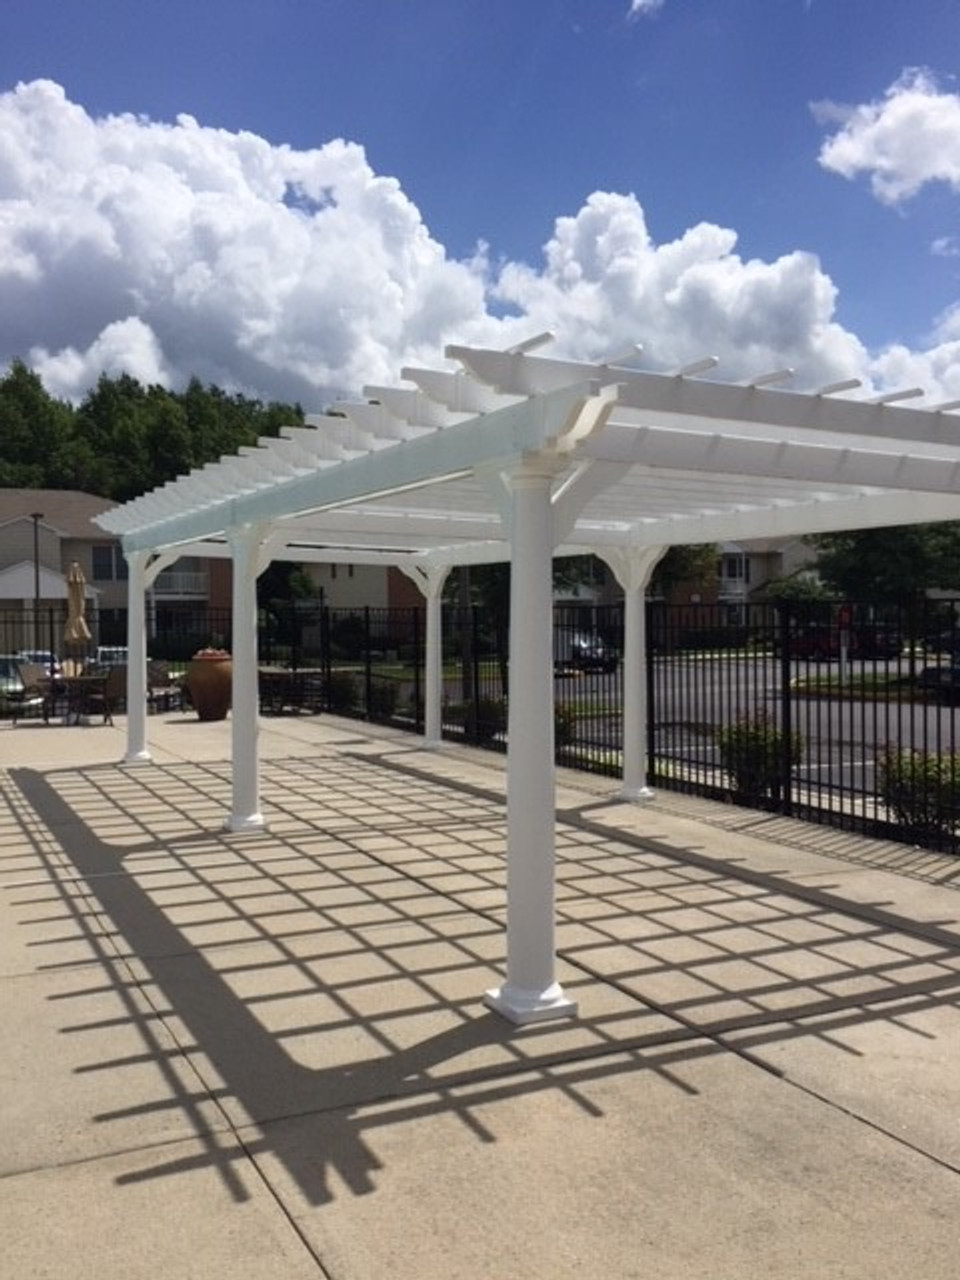 12x28 Classic White Vinyl Pergola Kit - poolside at an apartment complex